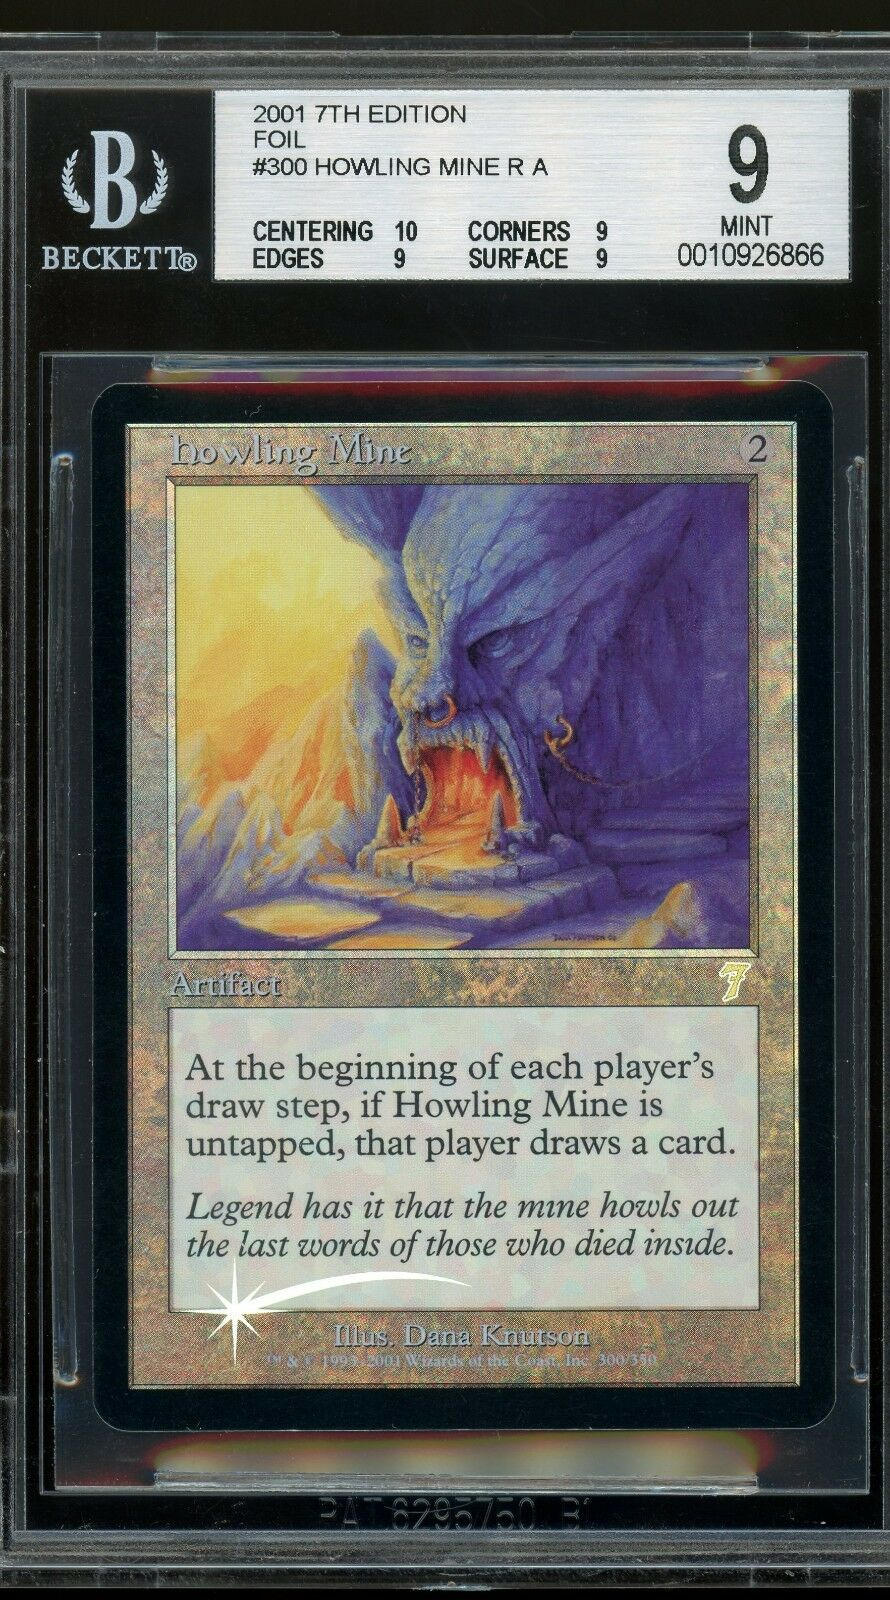 Howling Mine - 7th Edition foil, BGS 9 9 9 MINT. MTG (pop 1 of 2) 3ae777